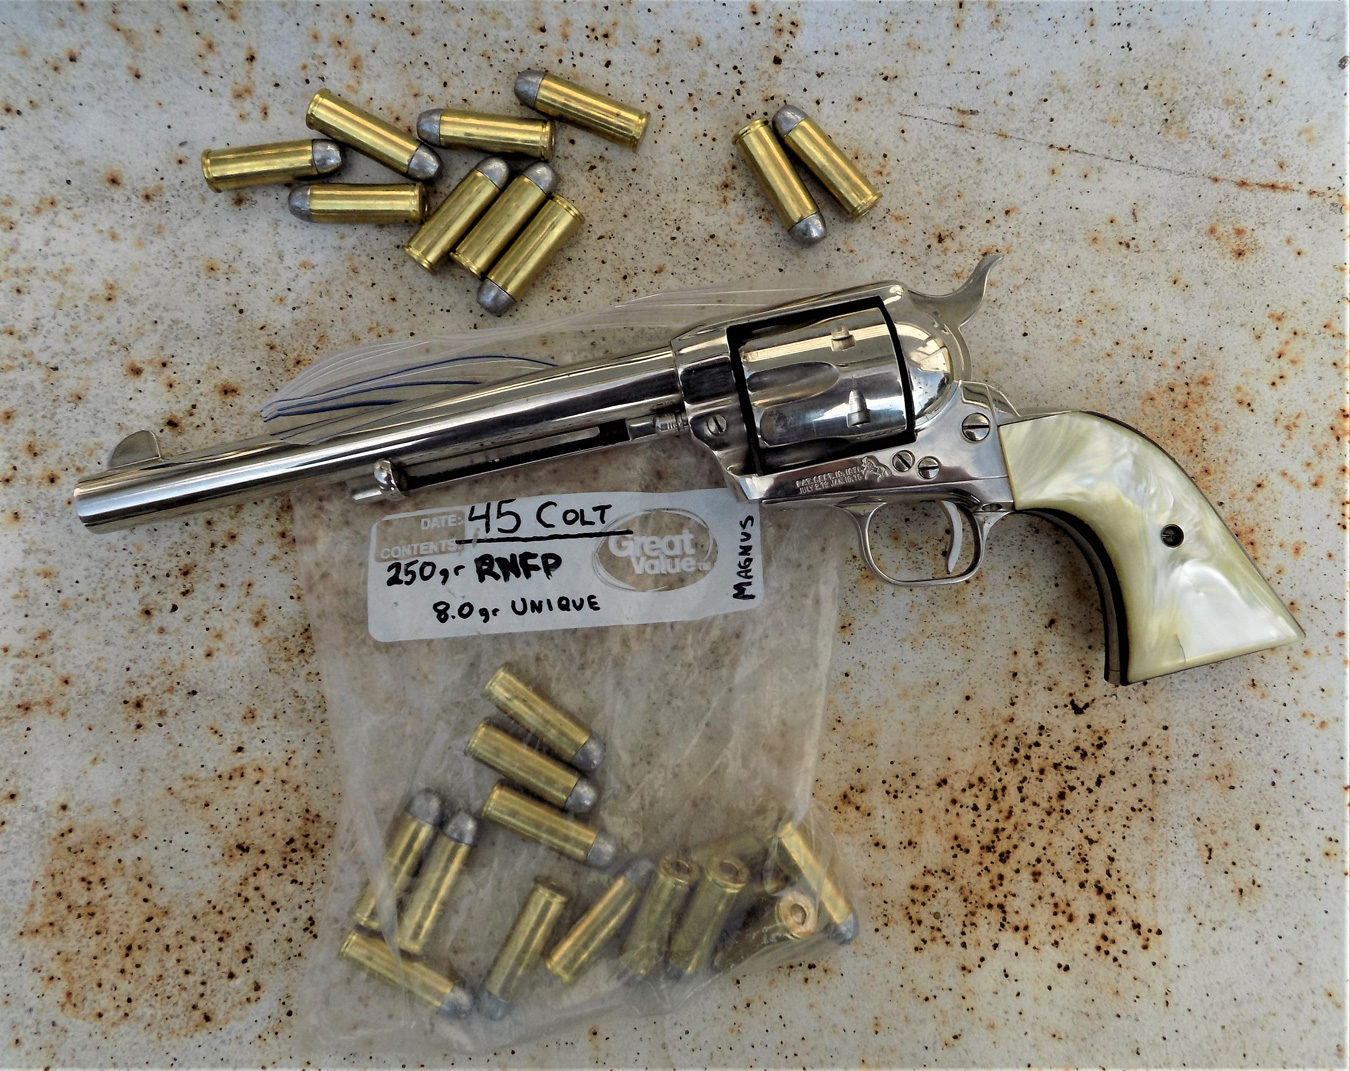 Colt Single Action Army  revolver with loose cartridges